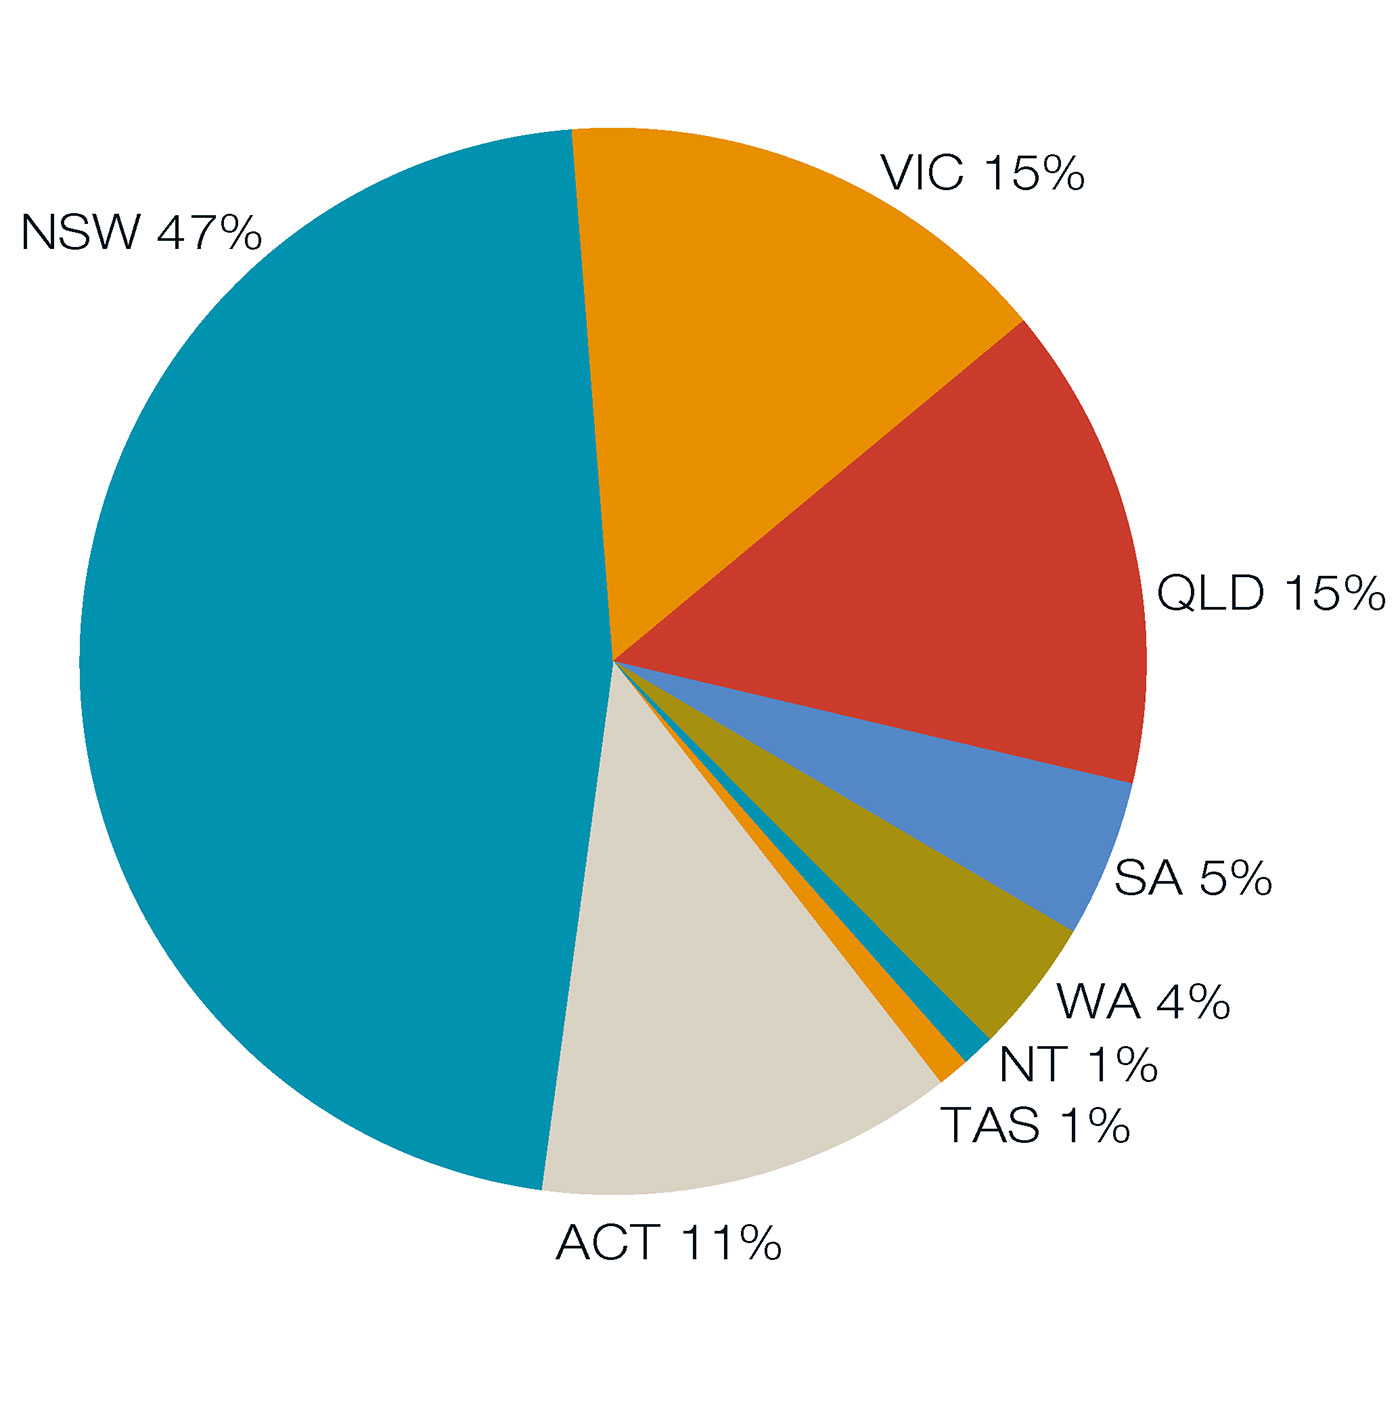 Doughnut chart indicating the percentage of school bookings per state, 2011-12. NSW 47 per cent, VIC 15 per cent, QLD 15 per cent, SA 5 per cent, WA 4 per cent, NT 1 per cent, TAS 1 per cent, ACT 11 per cent.